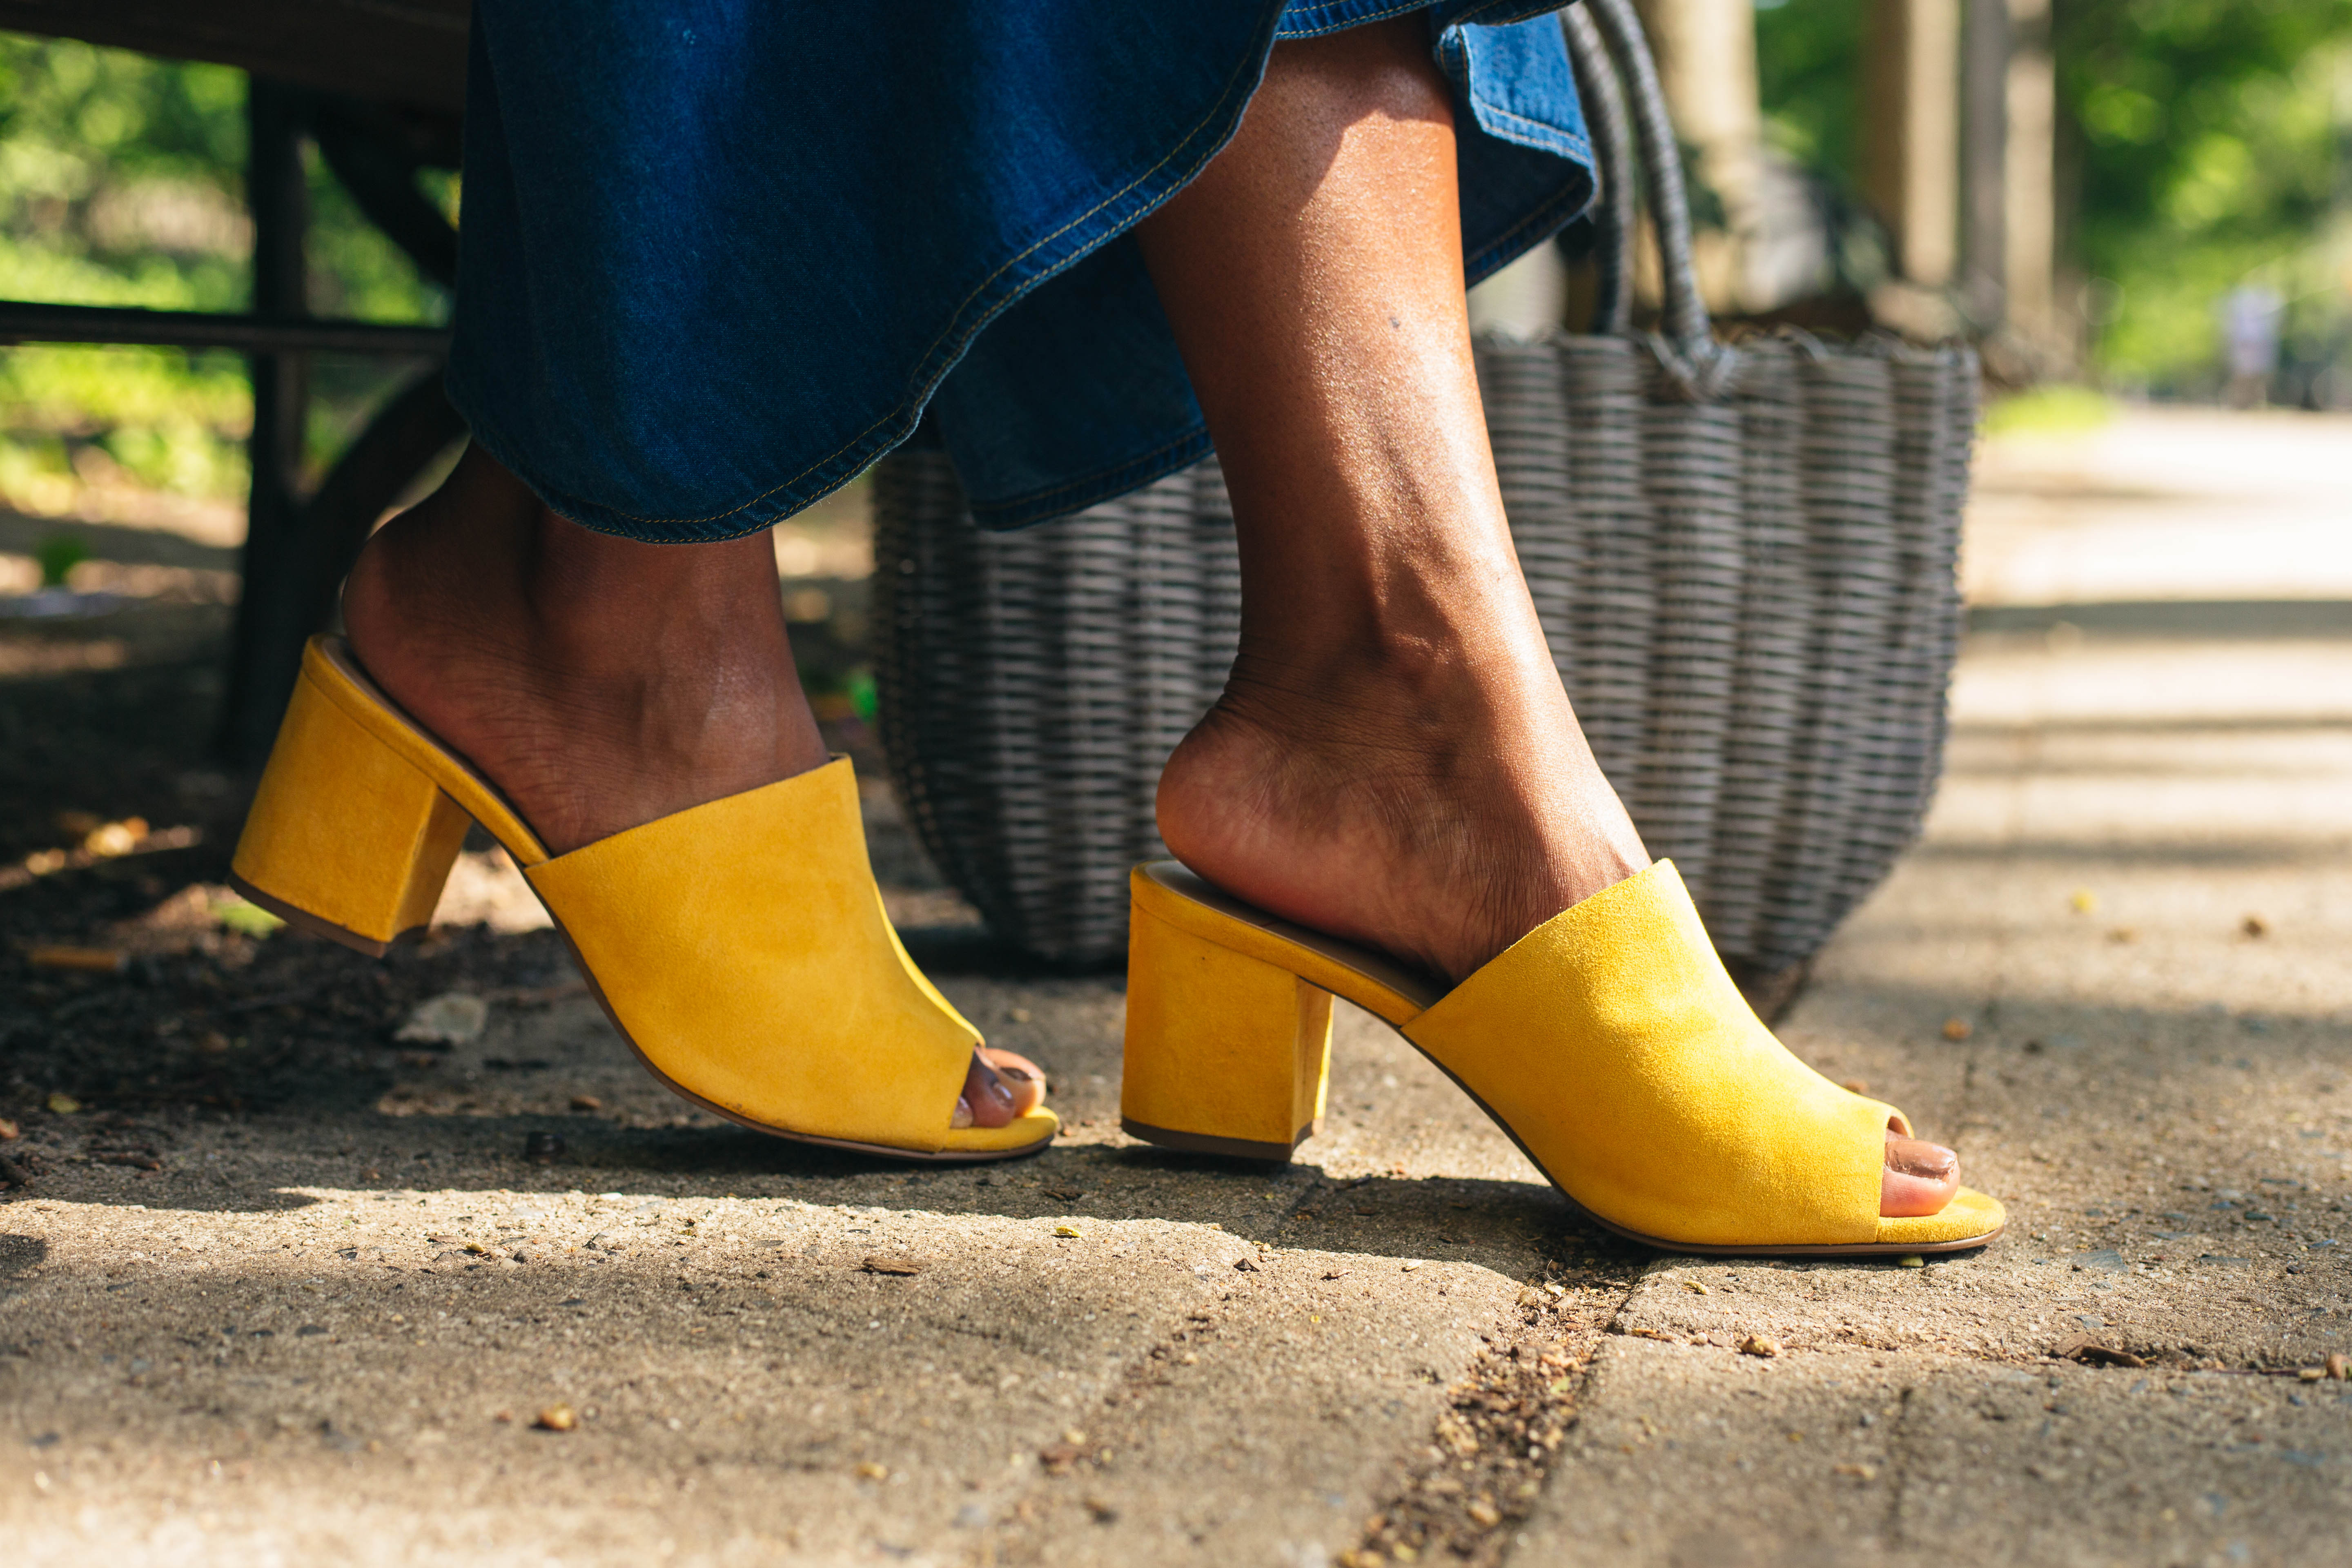 288b163c9d8 Sole Society Summer Sandals   Giveaway – Fashion Steele NYC